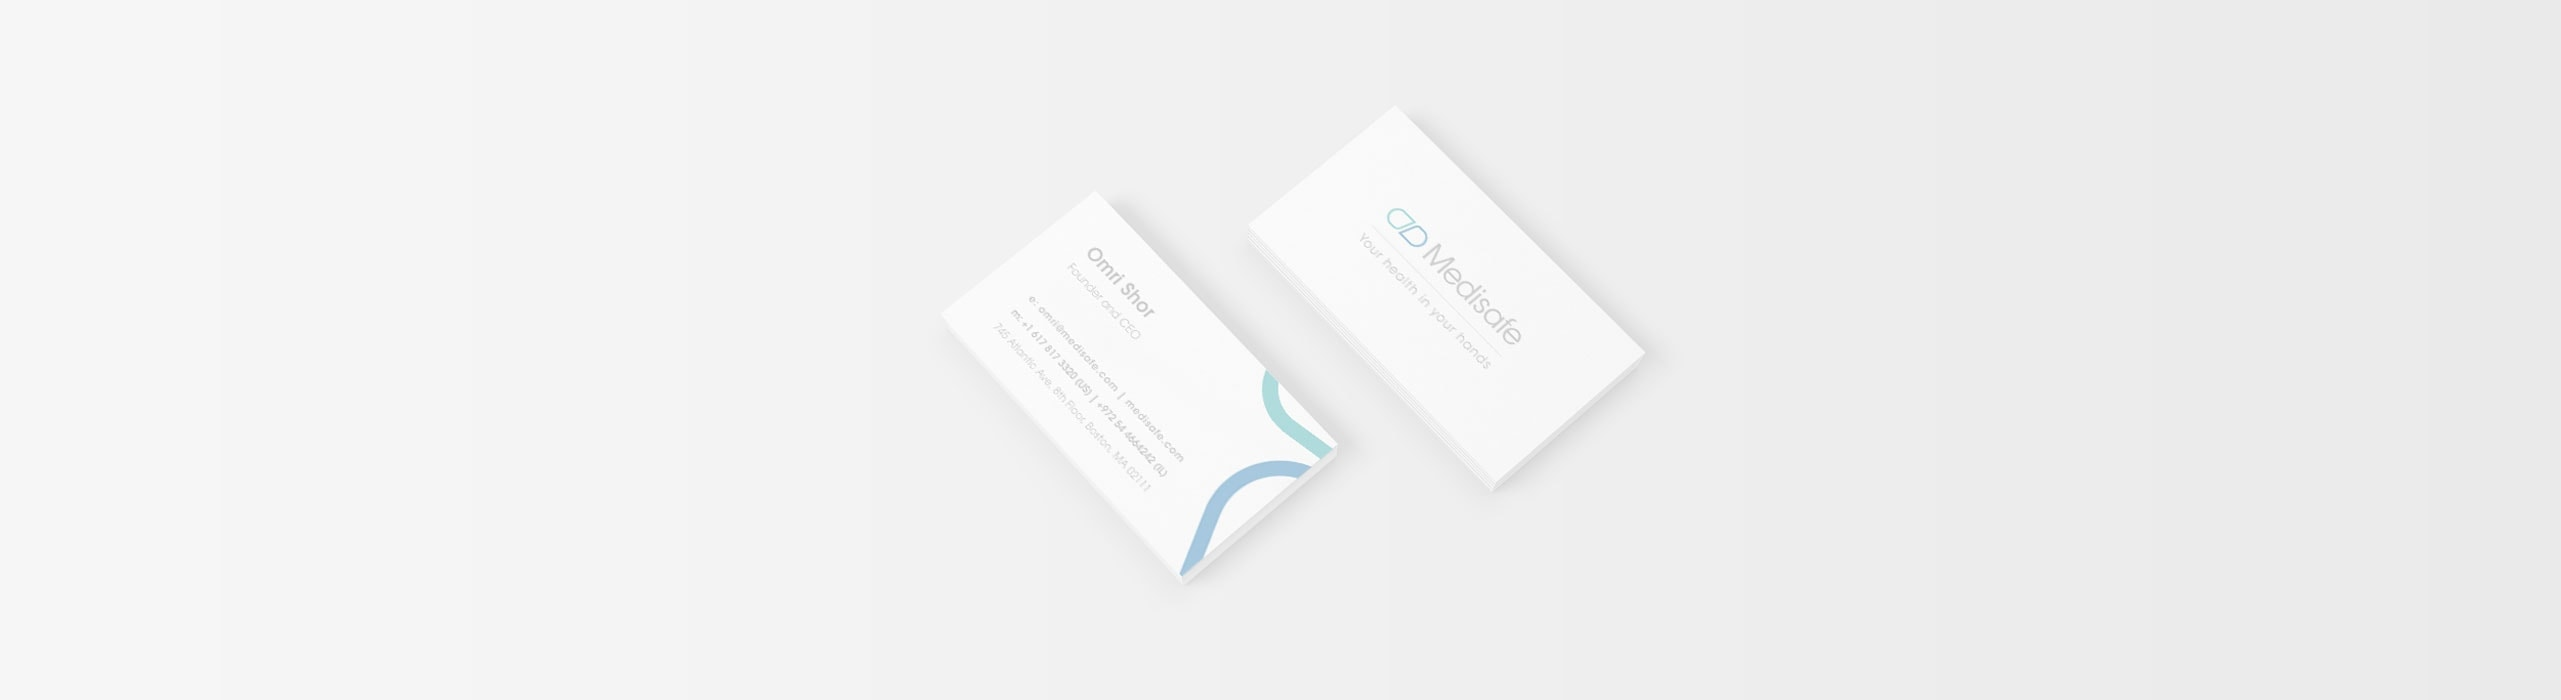 Medisafe - natie-medisafe-business-cards-design - Natie Branding Agency